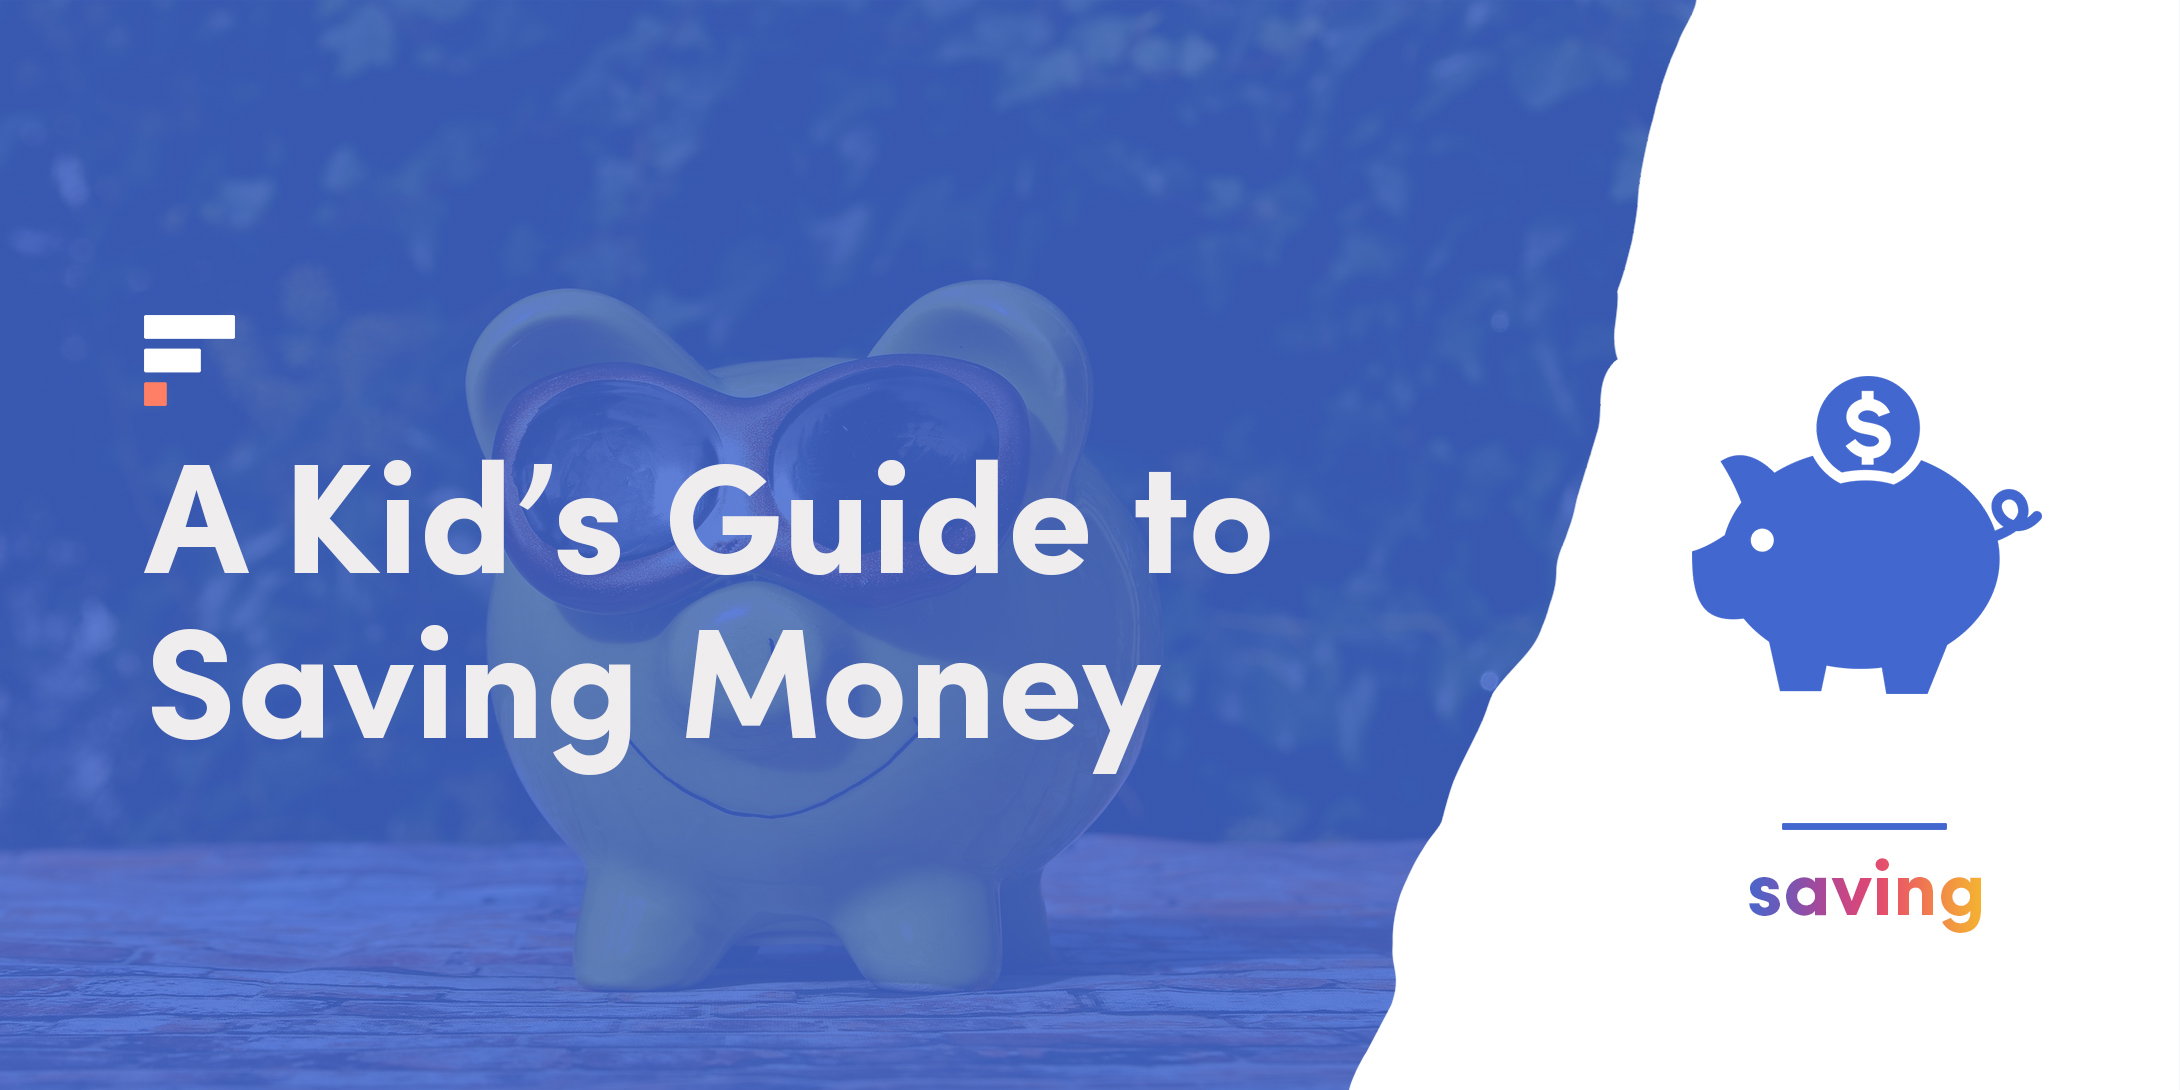 A Kid's Guide to Saving Money